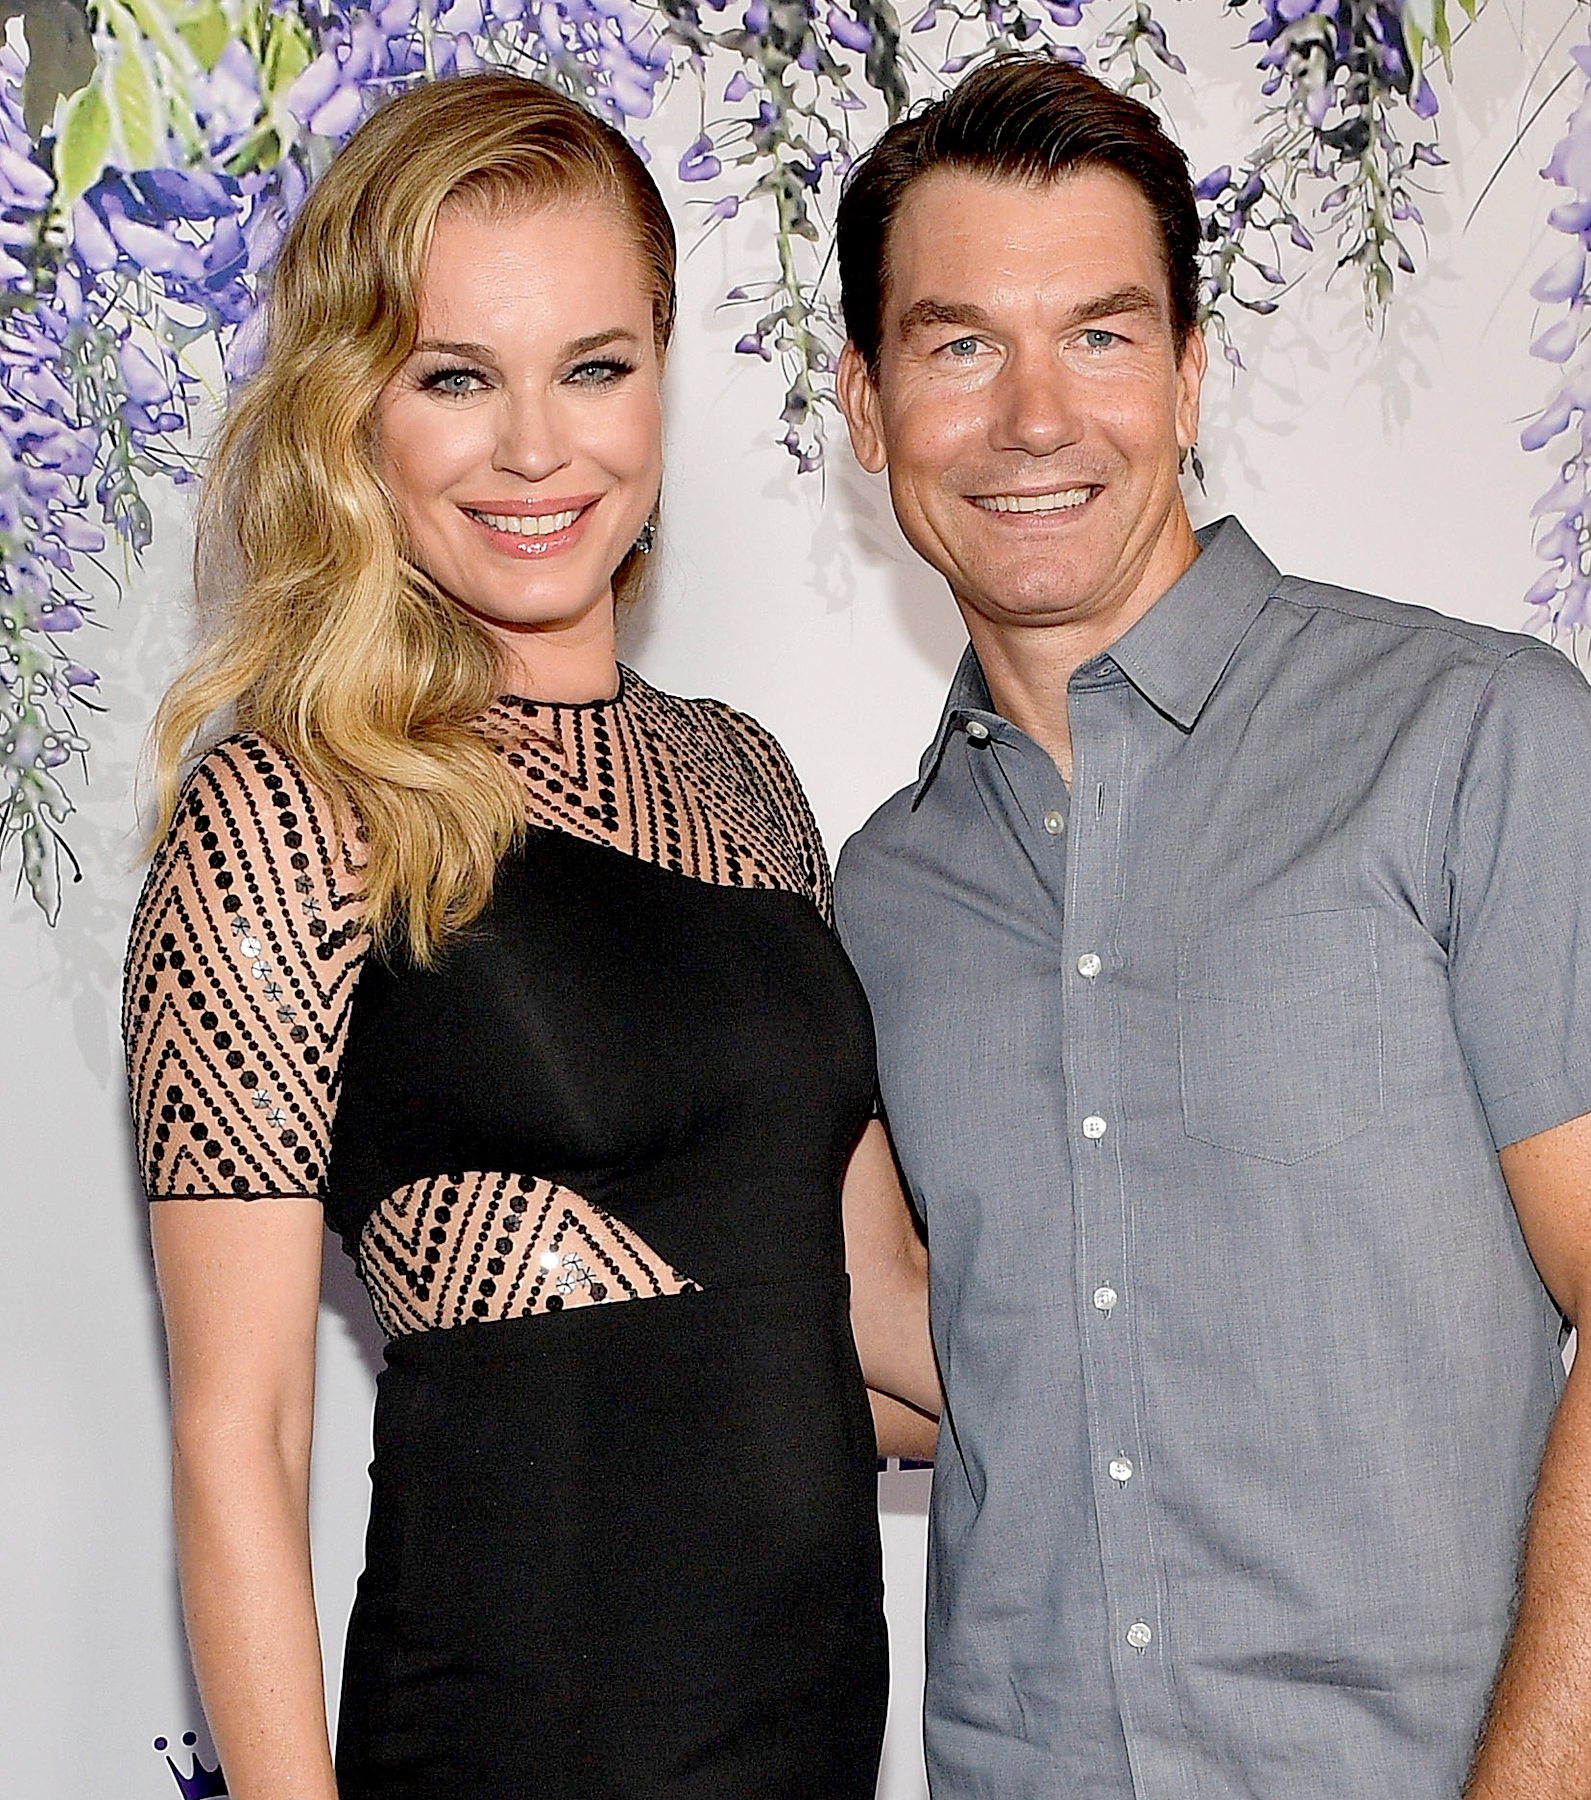 Rebecca-Romijn-and-Jerry-O'Connell-romantic-holidays - Rebecca Romijn and Jerry O'Connell attend the 2018 Hallmark Channel Summer TCA at Private Residence on July 26, 2018 in Beverly Hills, California.